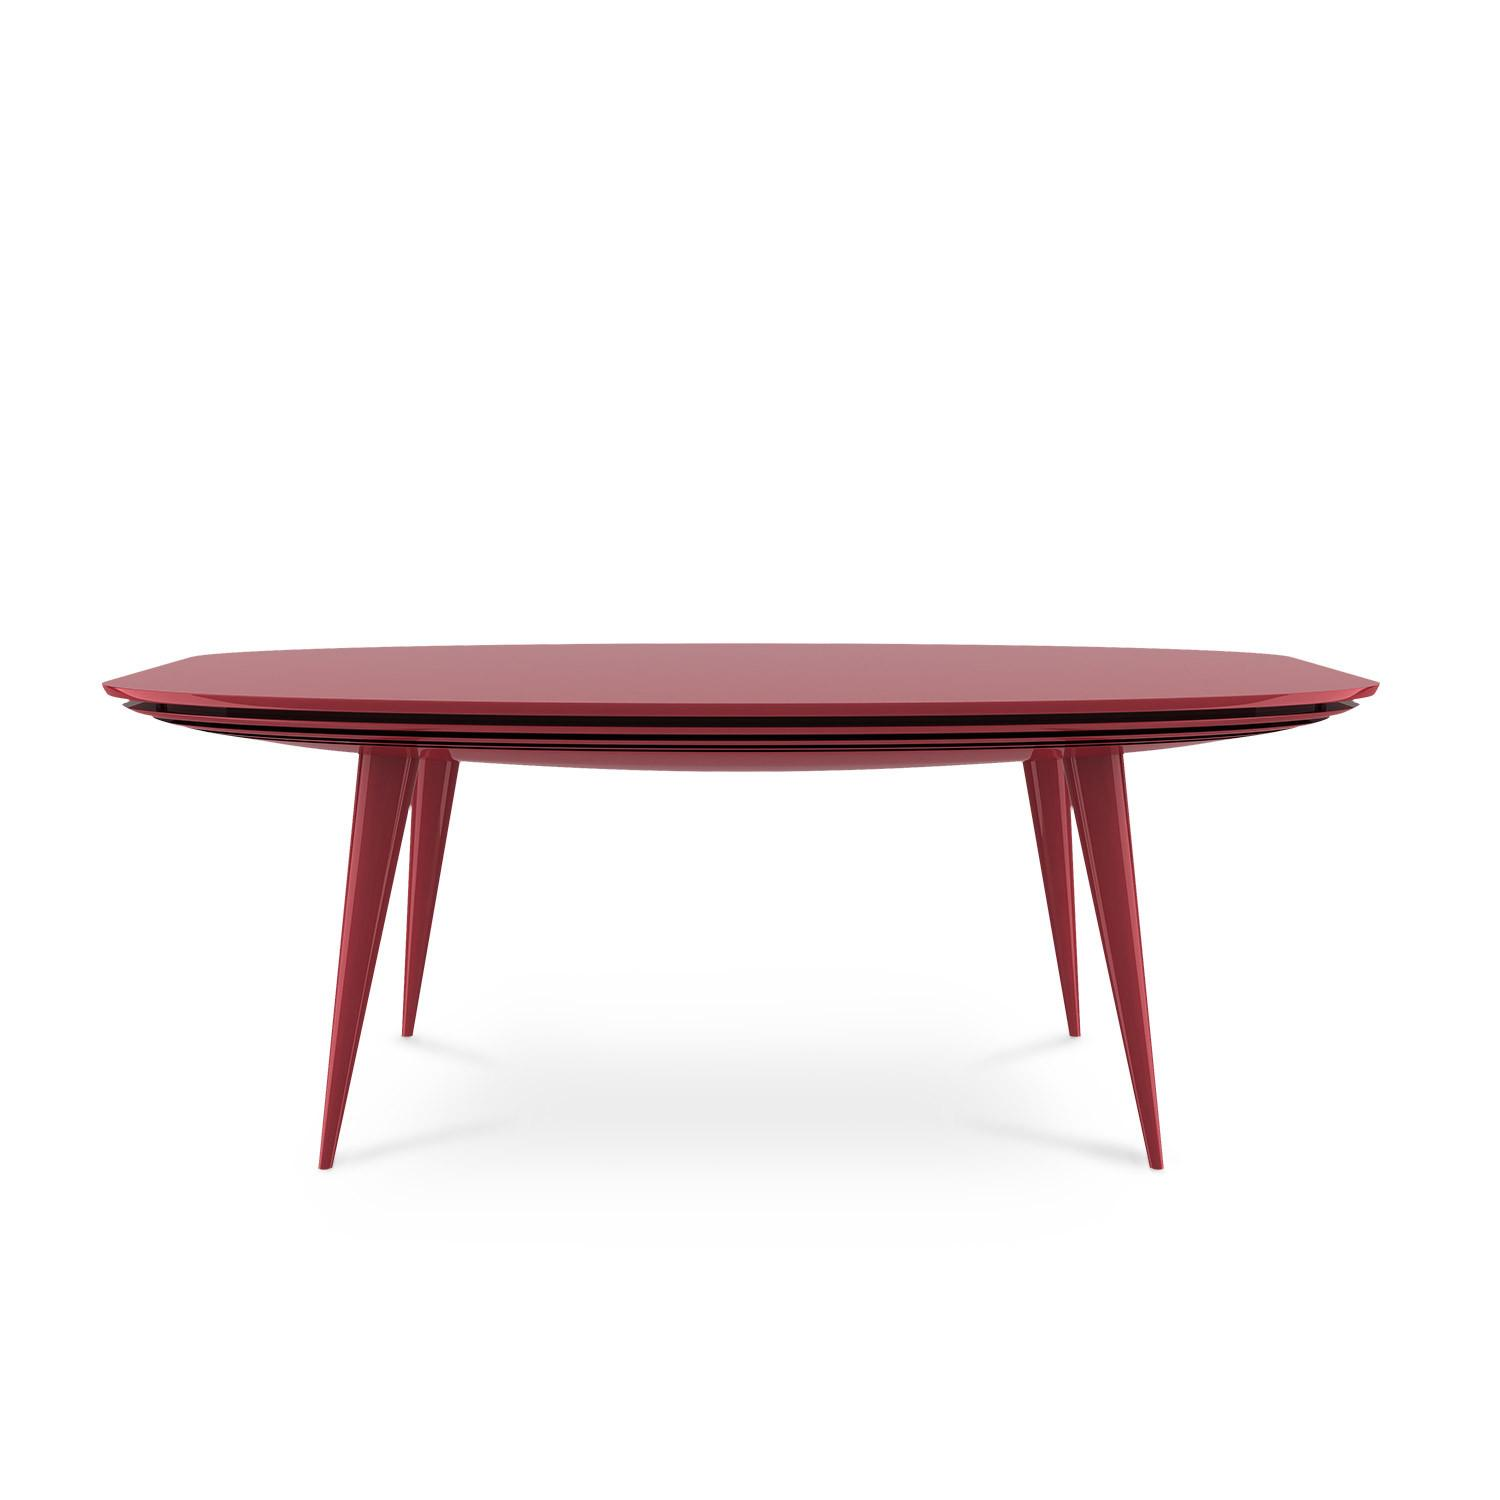 Accum Lacquered Dining Table Contemporary Furniture Design